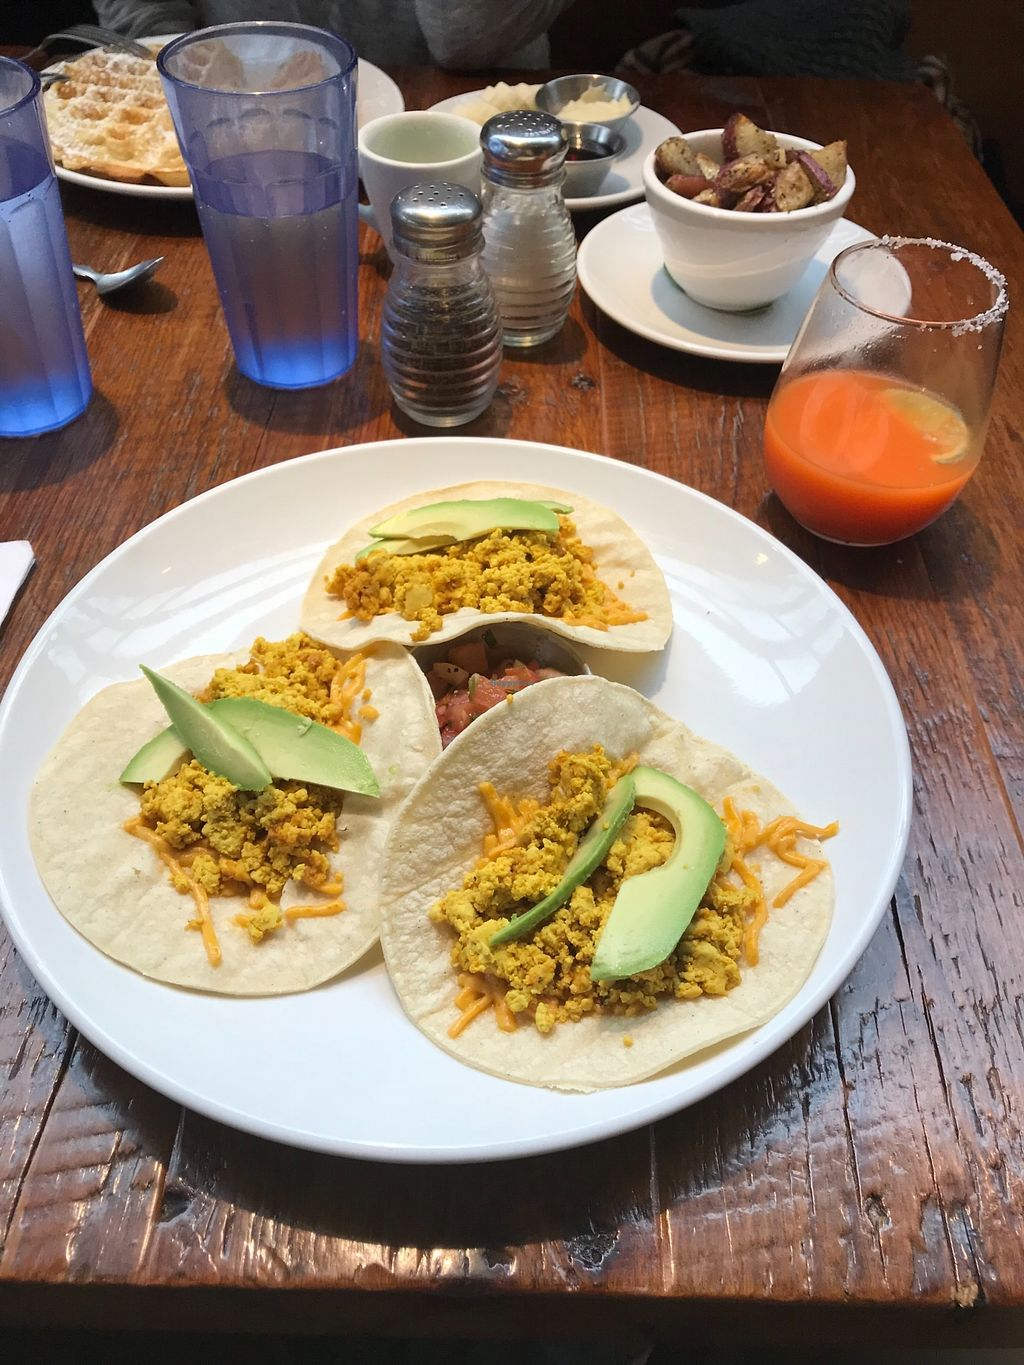 "Photo of Beerline Cafe  by <a href=""/members/profile/eveazc"">eveazc</a> <br/>Tofu scramble with avocado breakfast tacos <br/> January 11, 2018  - <a href='/contact/abuse/image/63336/345536'>Report</a>"